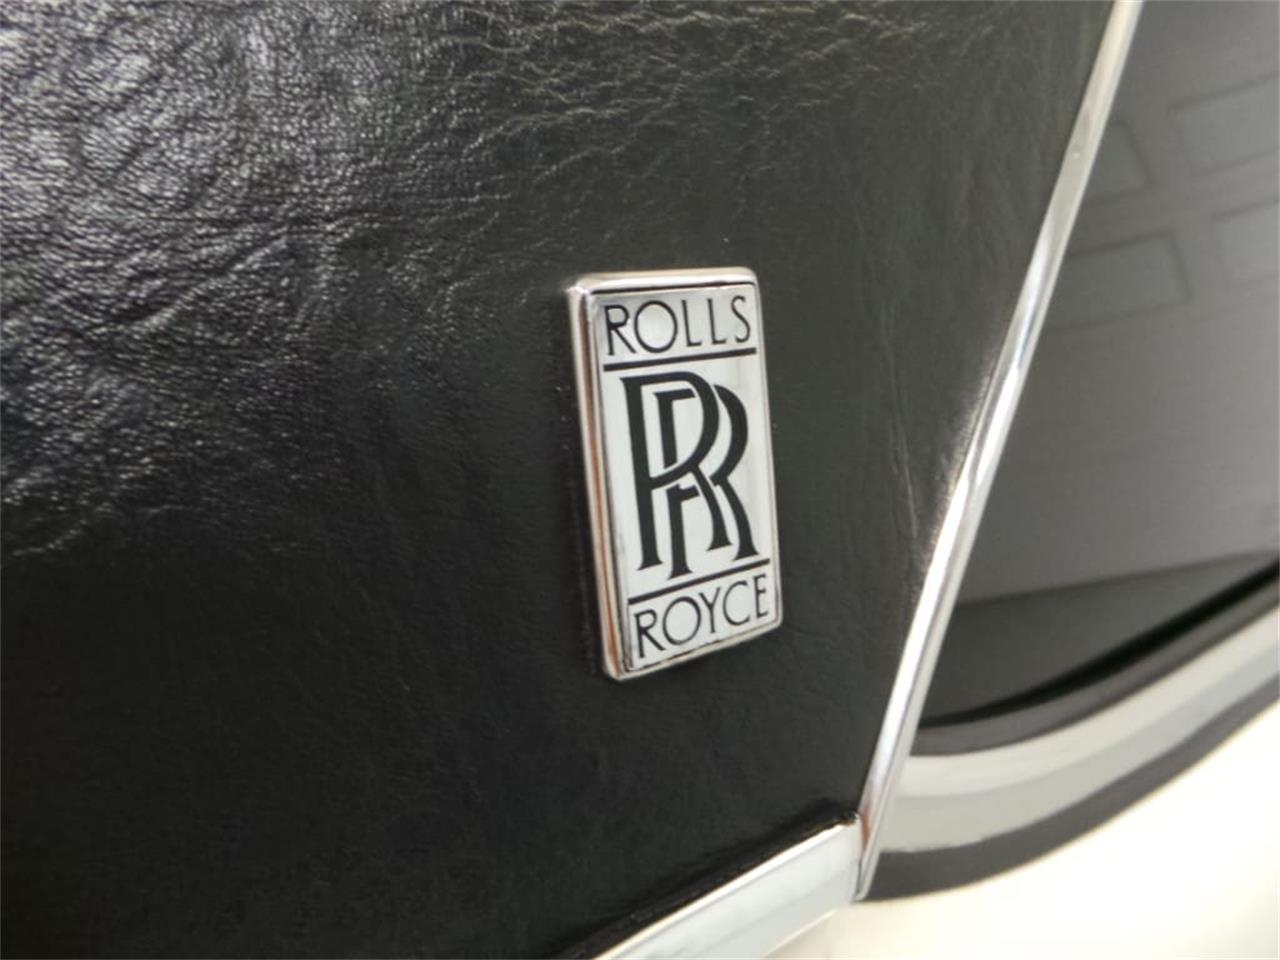 Large Picture of '91 Rolls-Royce Silver Spur located in Virginia Offered by Duncan Imports & Classic Cars - JZ3R